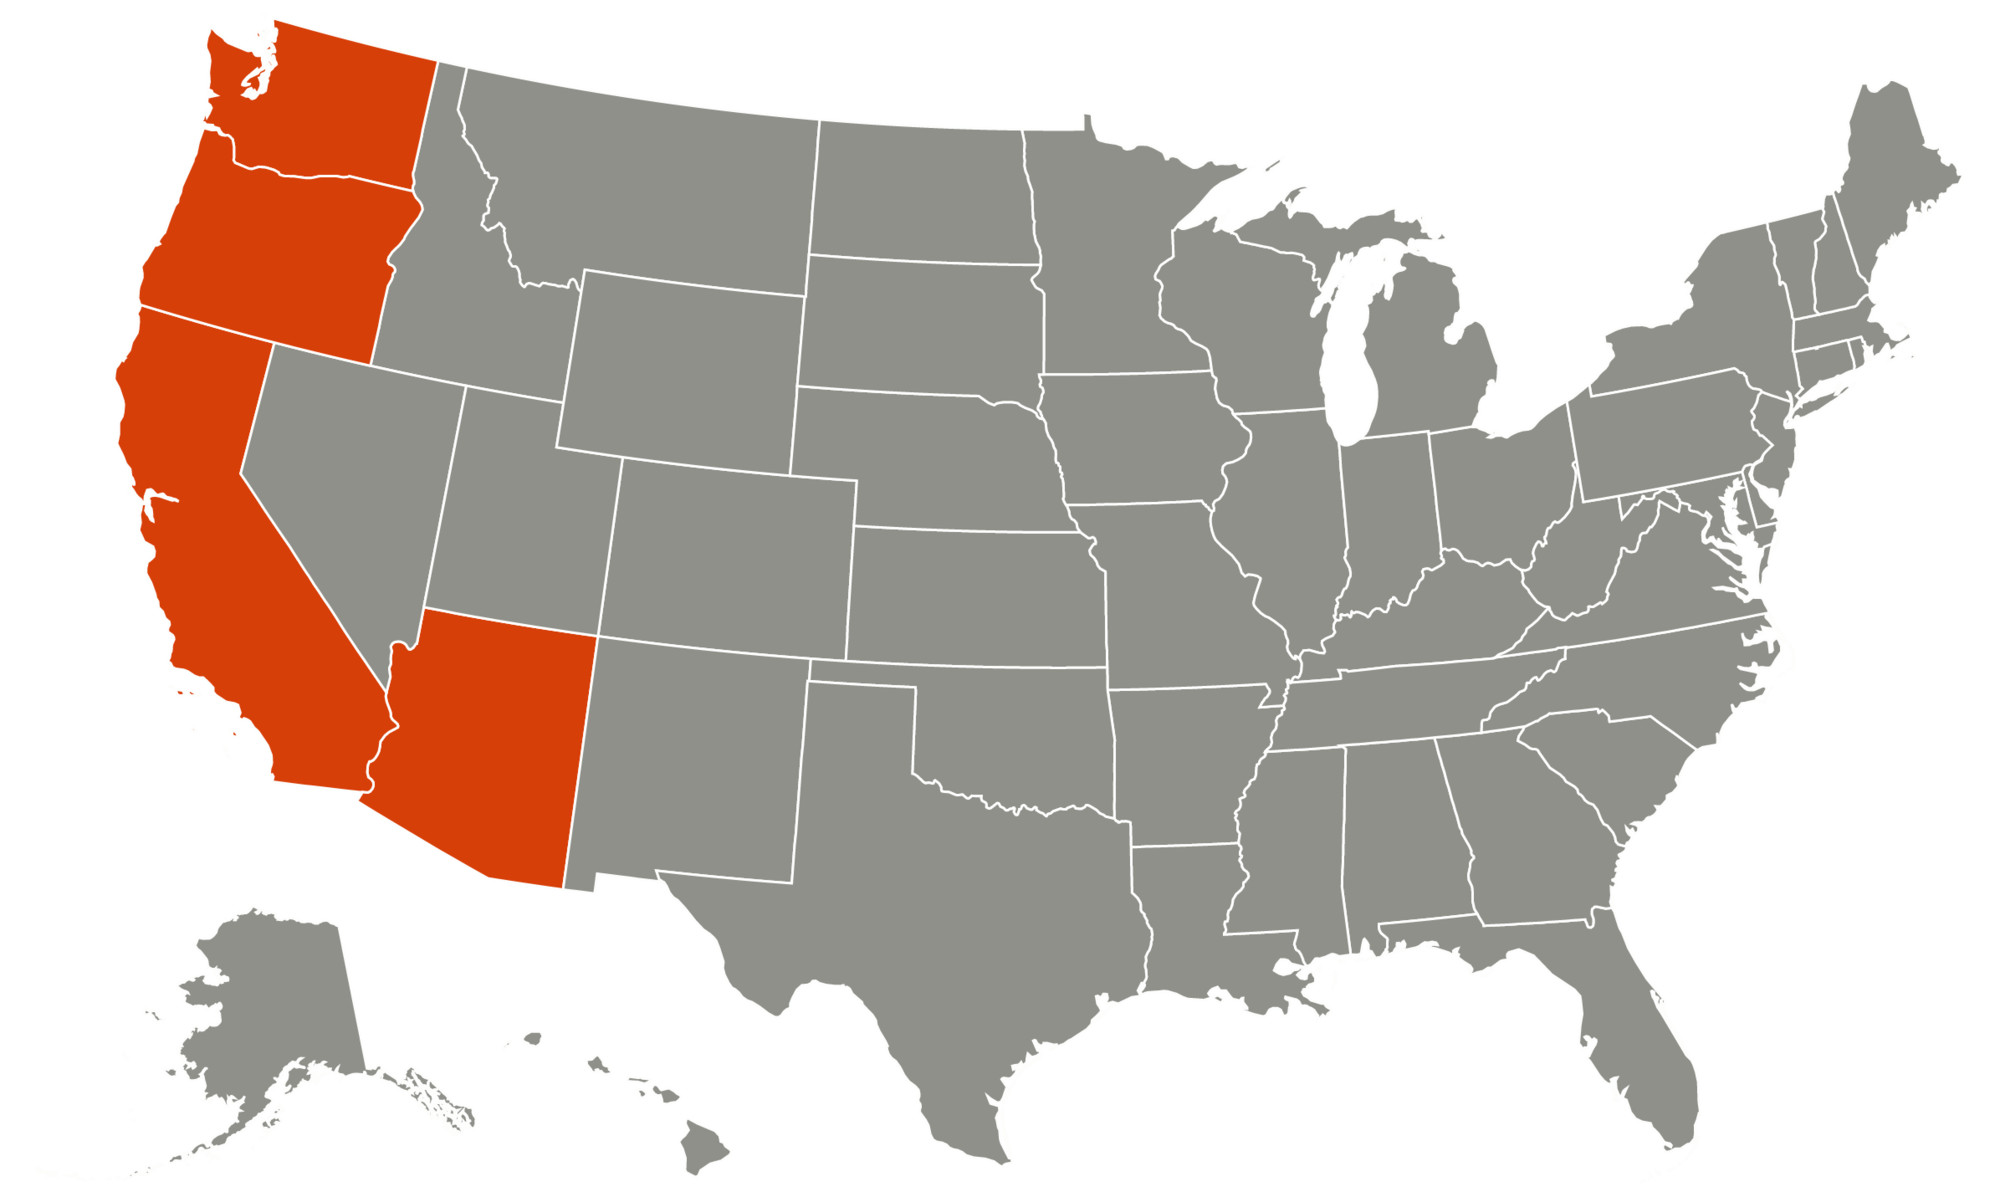 map of United States with Washington, Oregon, California, and Arizona highlighted orange